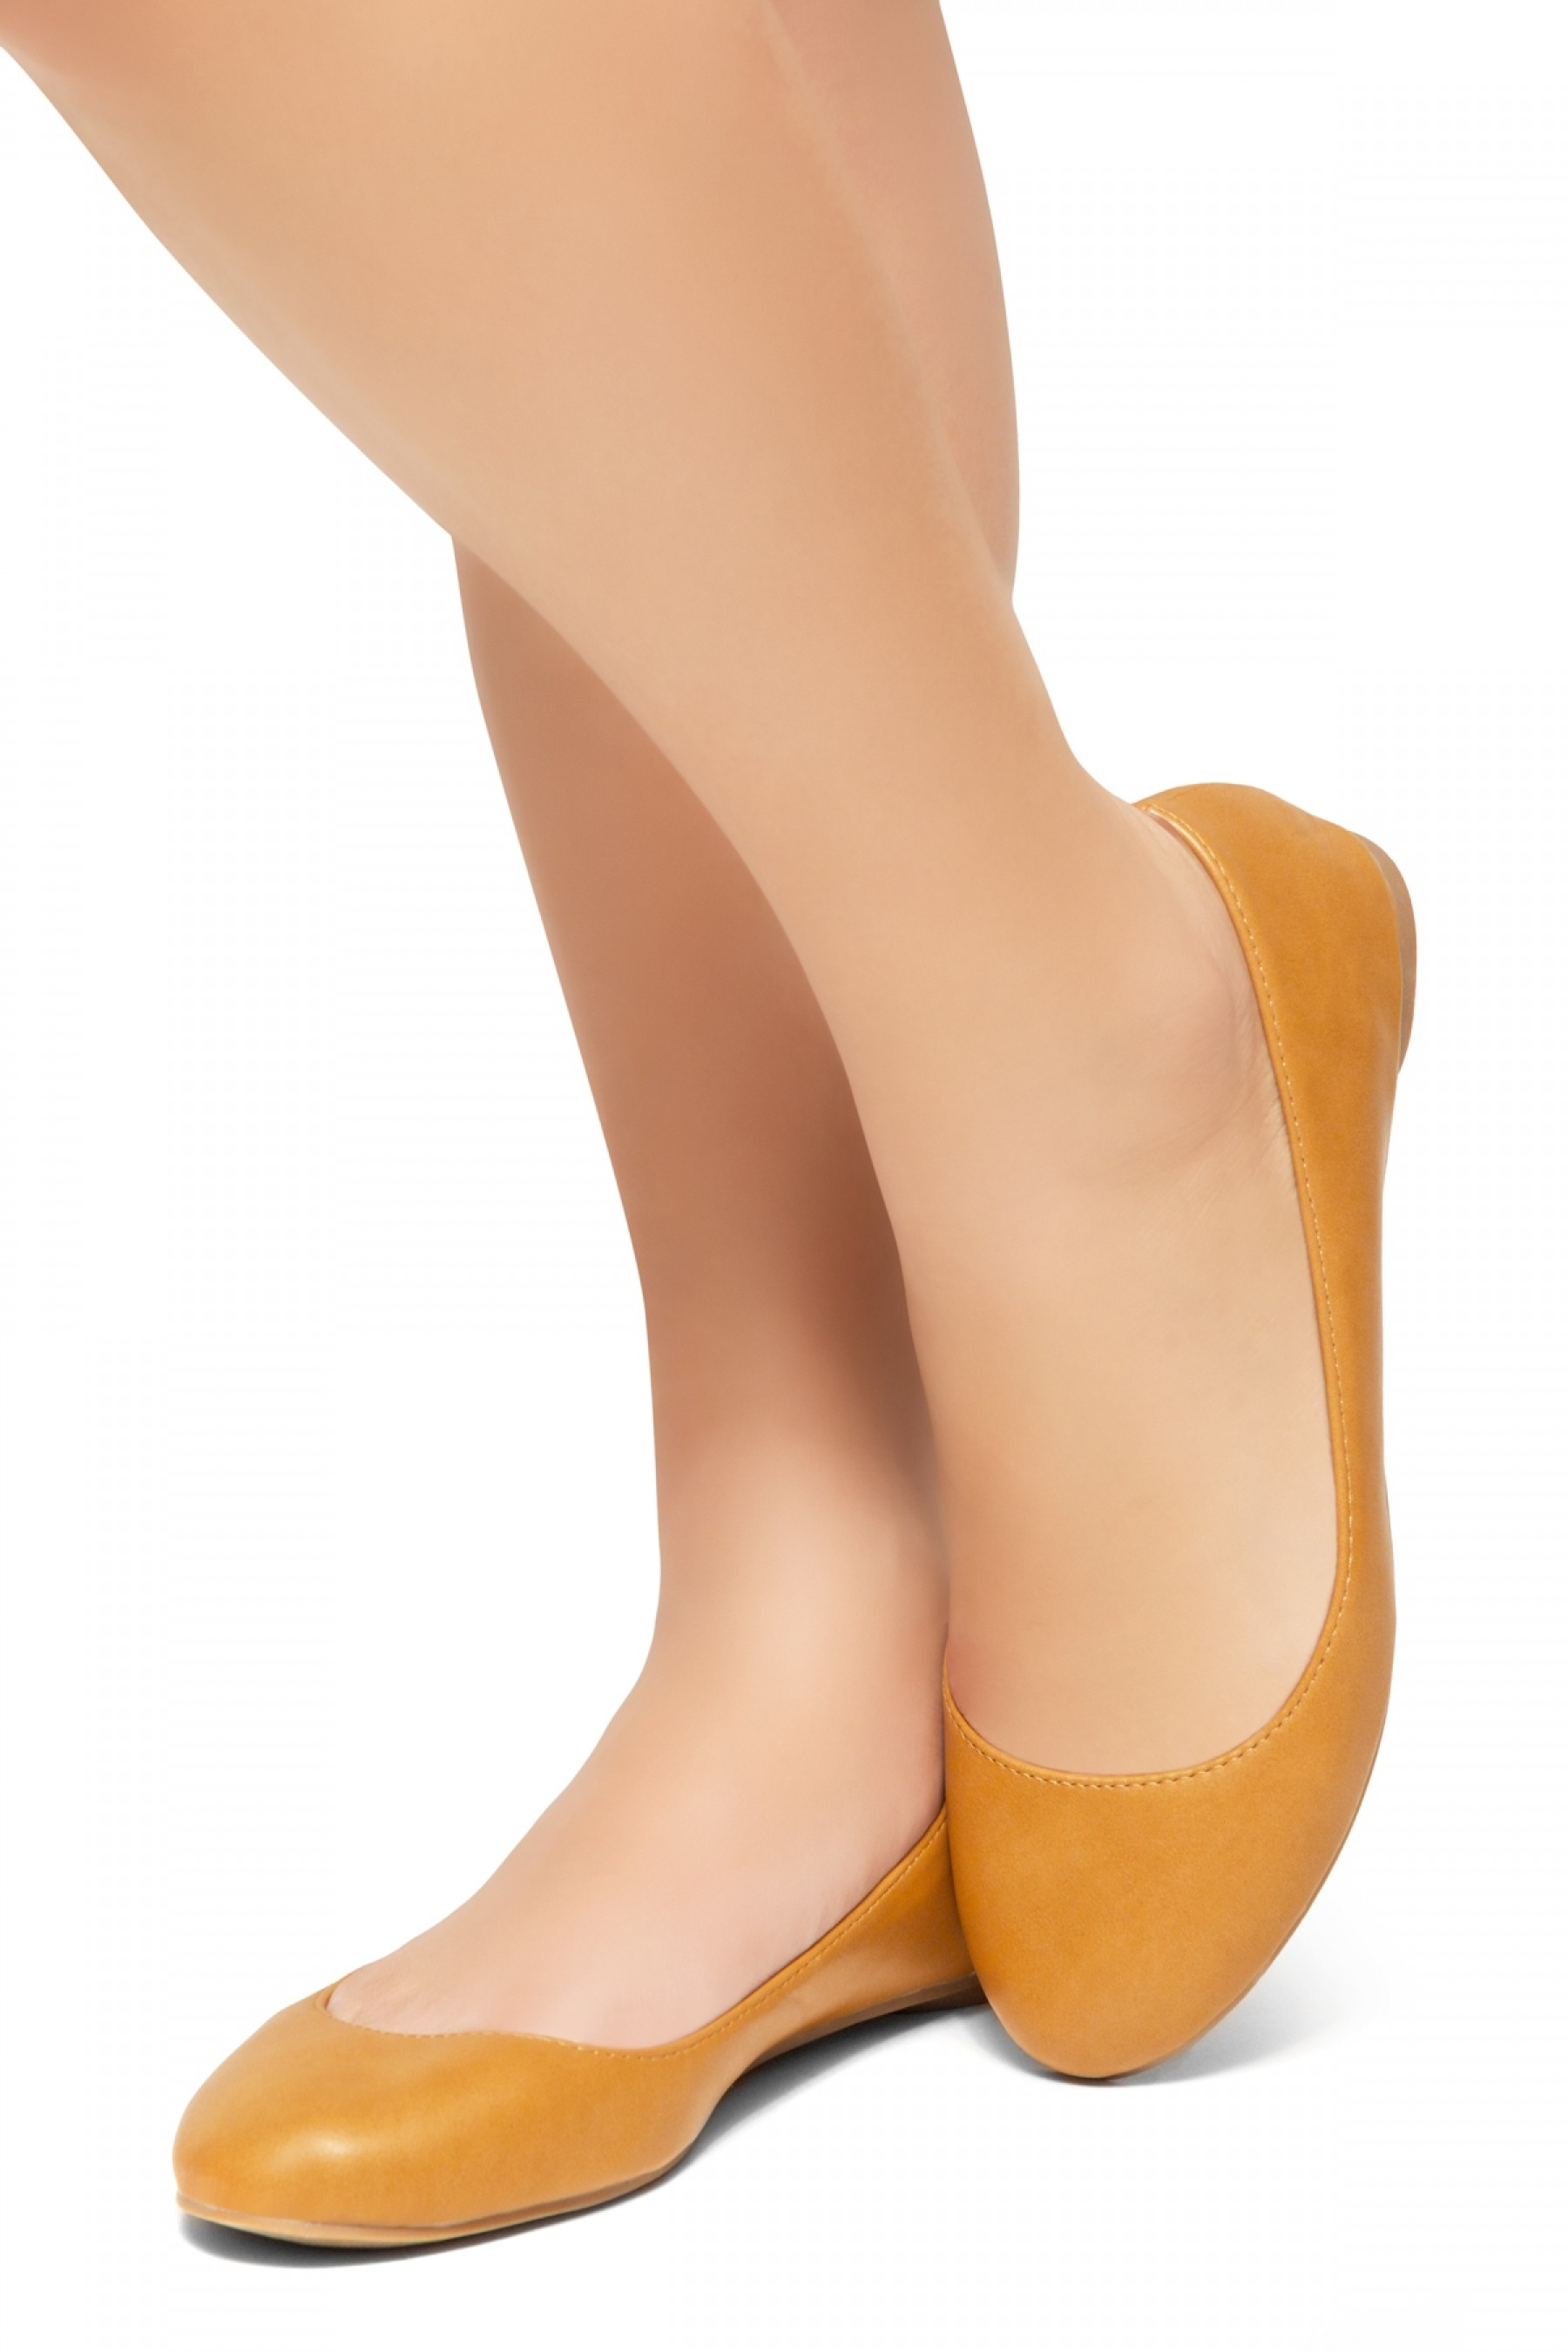 HerStyle New Memory-2 -Round Toe, No detail, Ballet Flat (Camel)